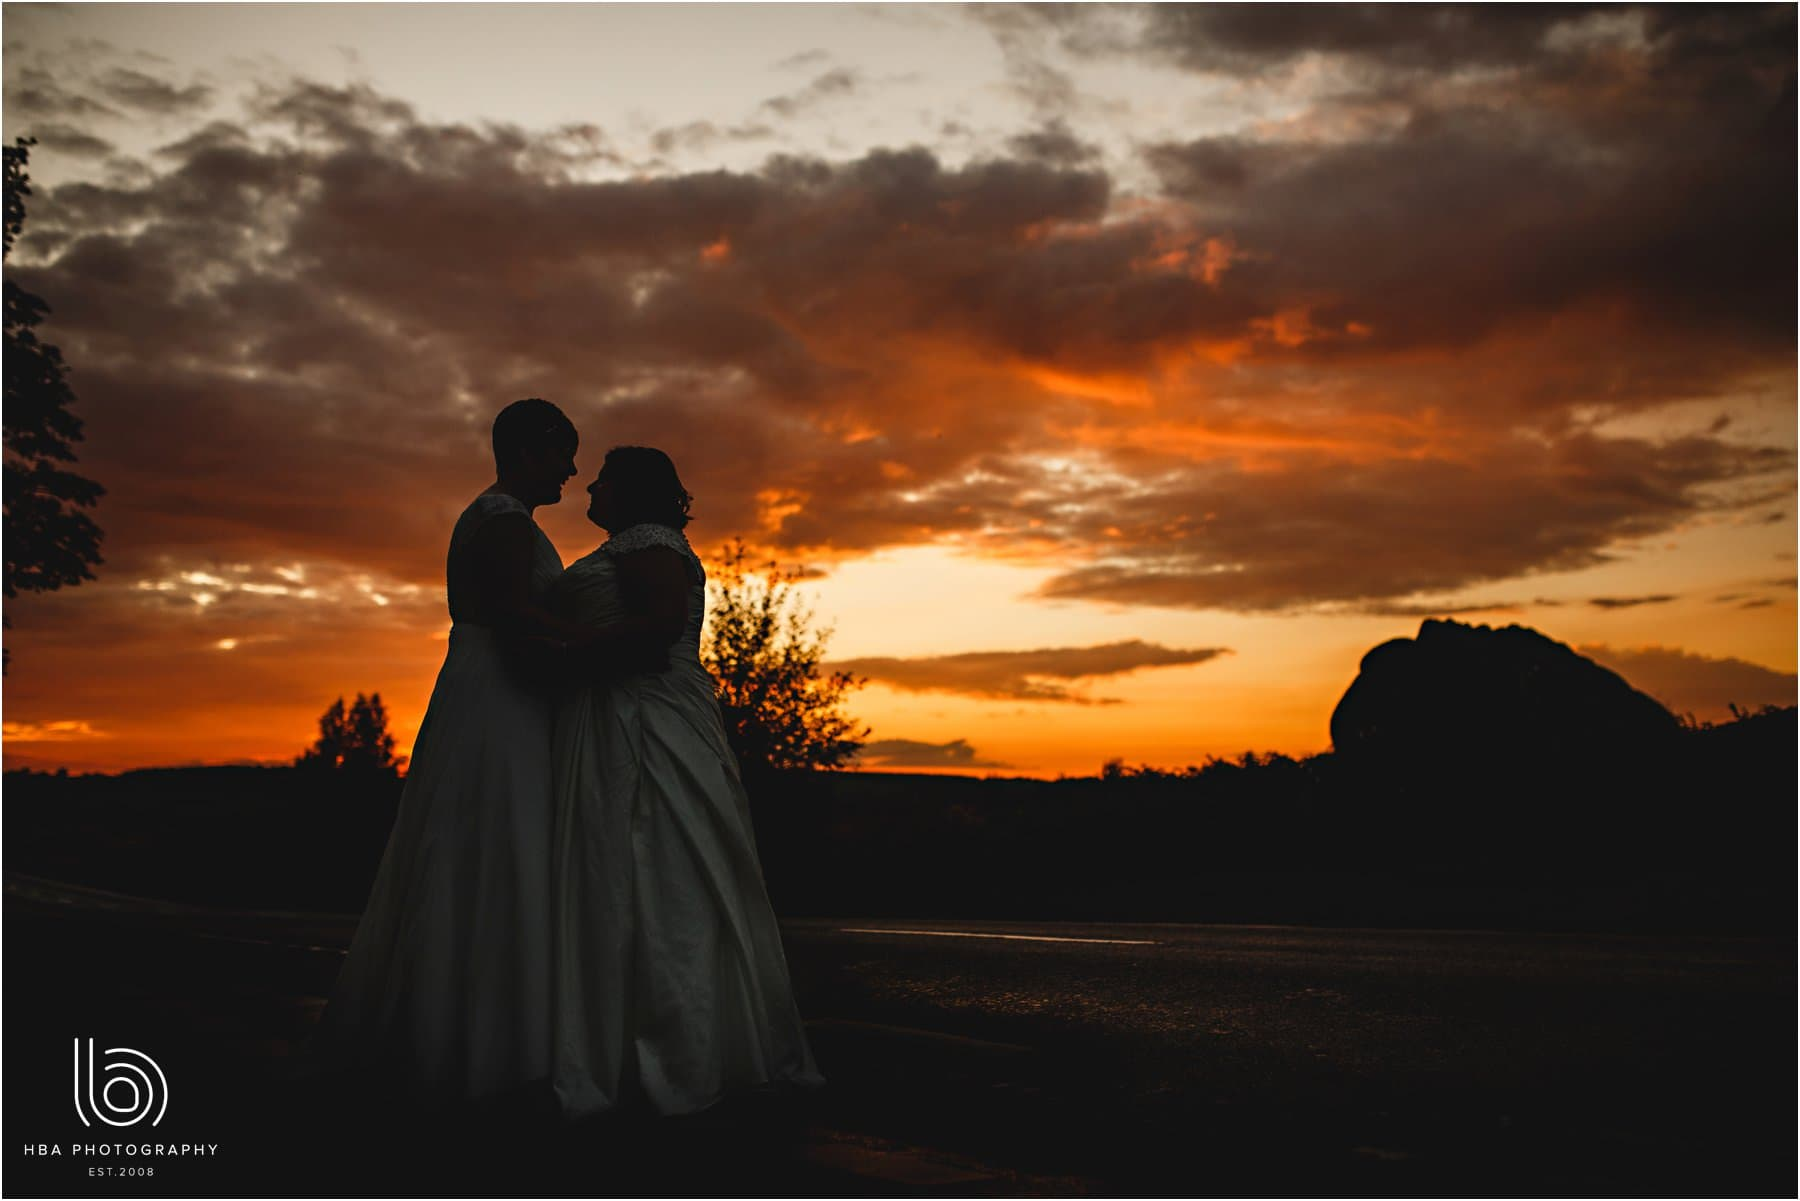 the two brides in the sunset